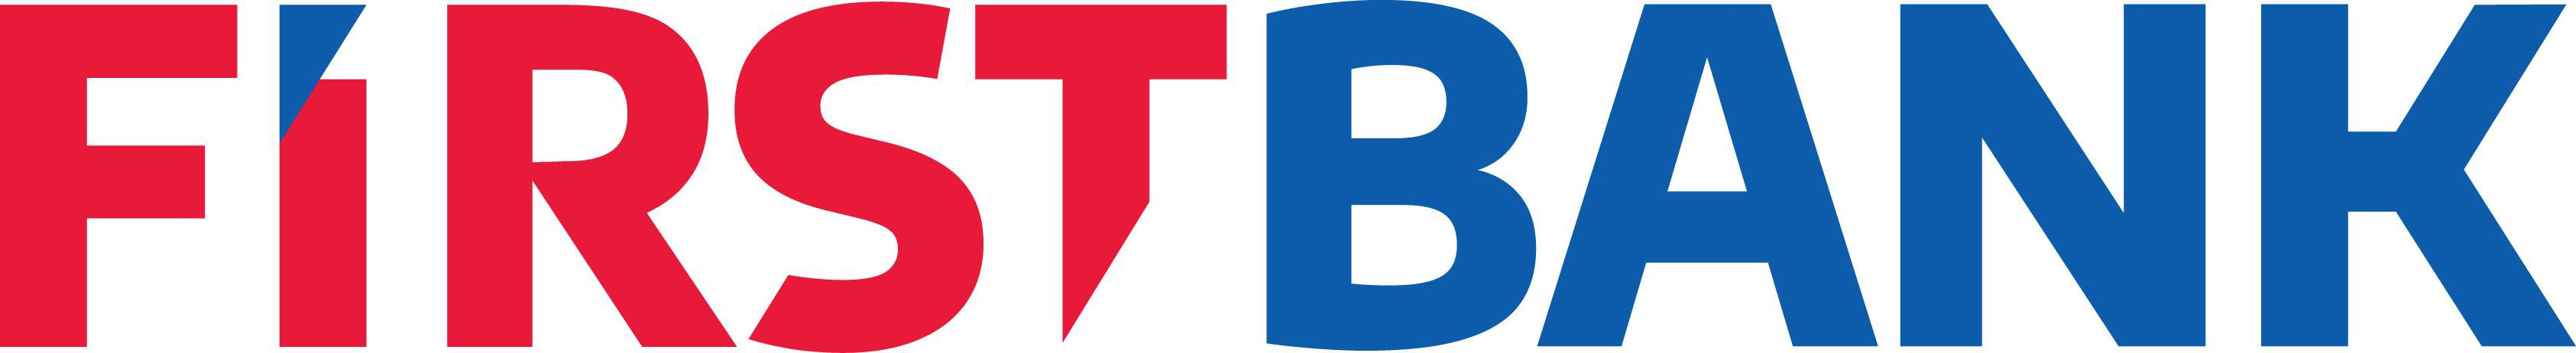 logo-first-bank-01-jpeg-002